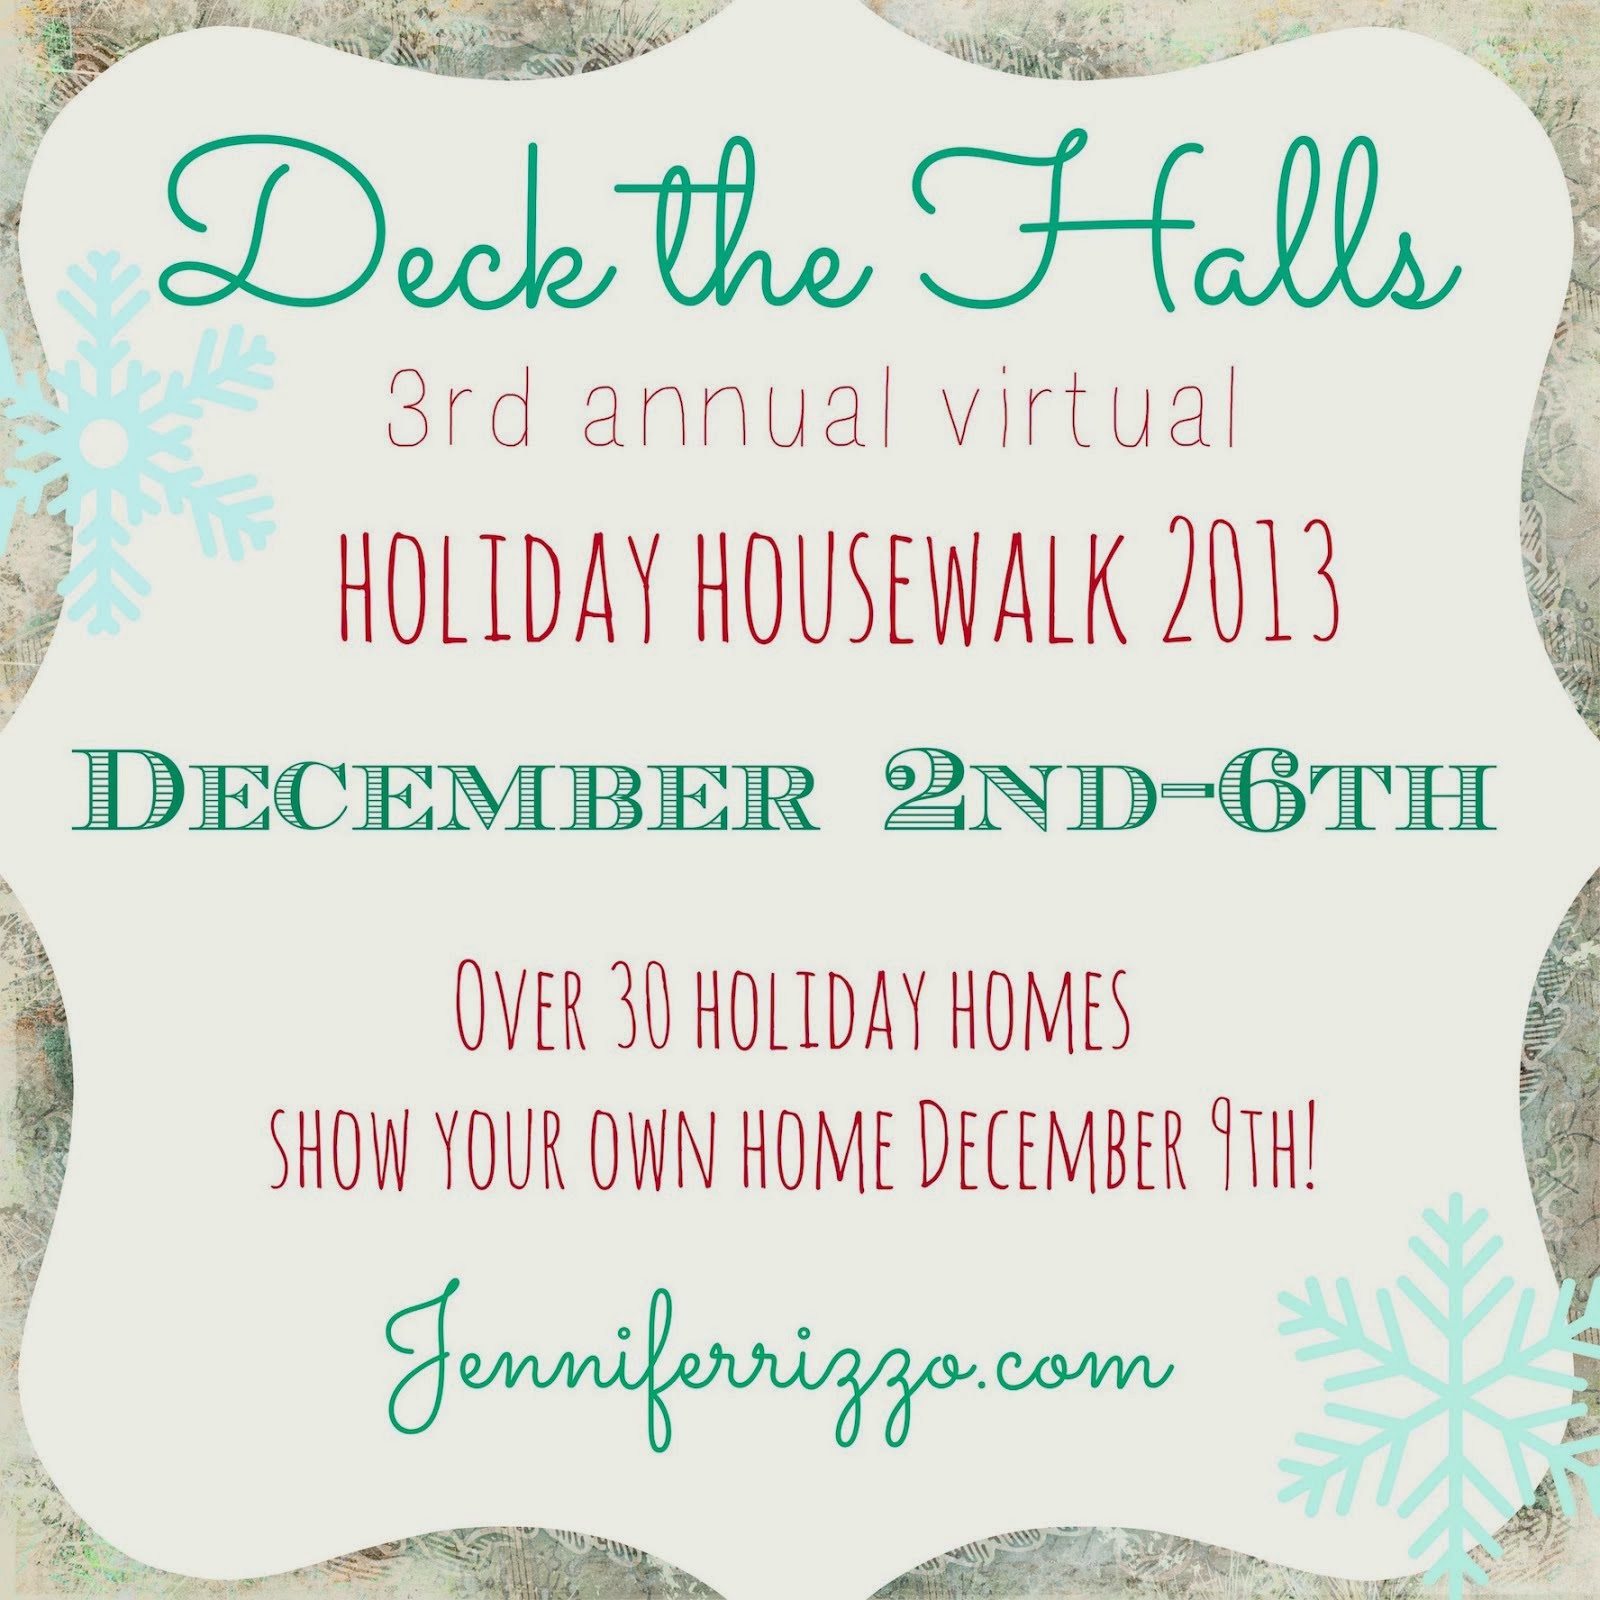 2013 HOLIDAY HOUSEWALK